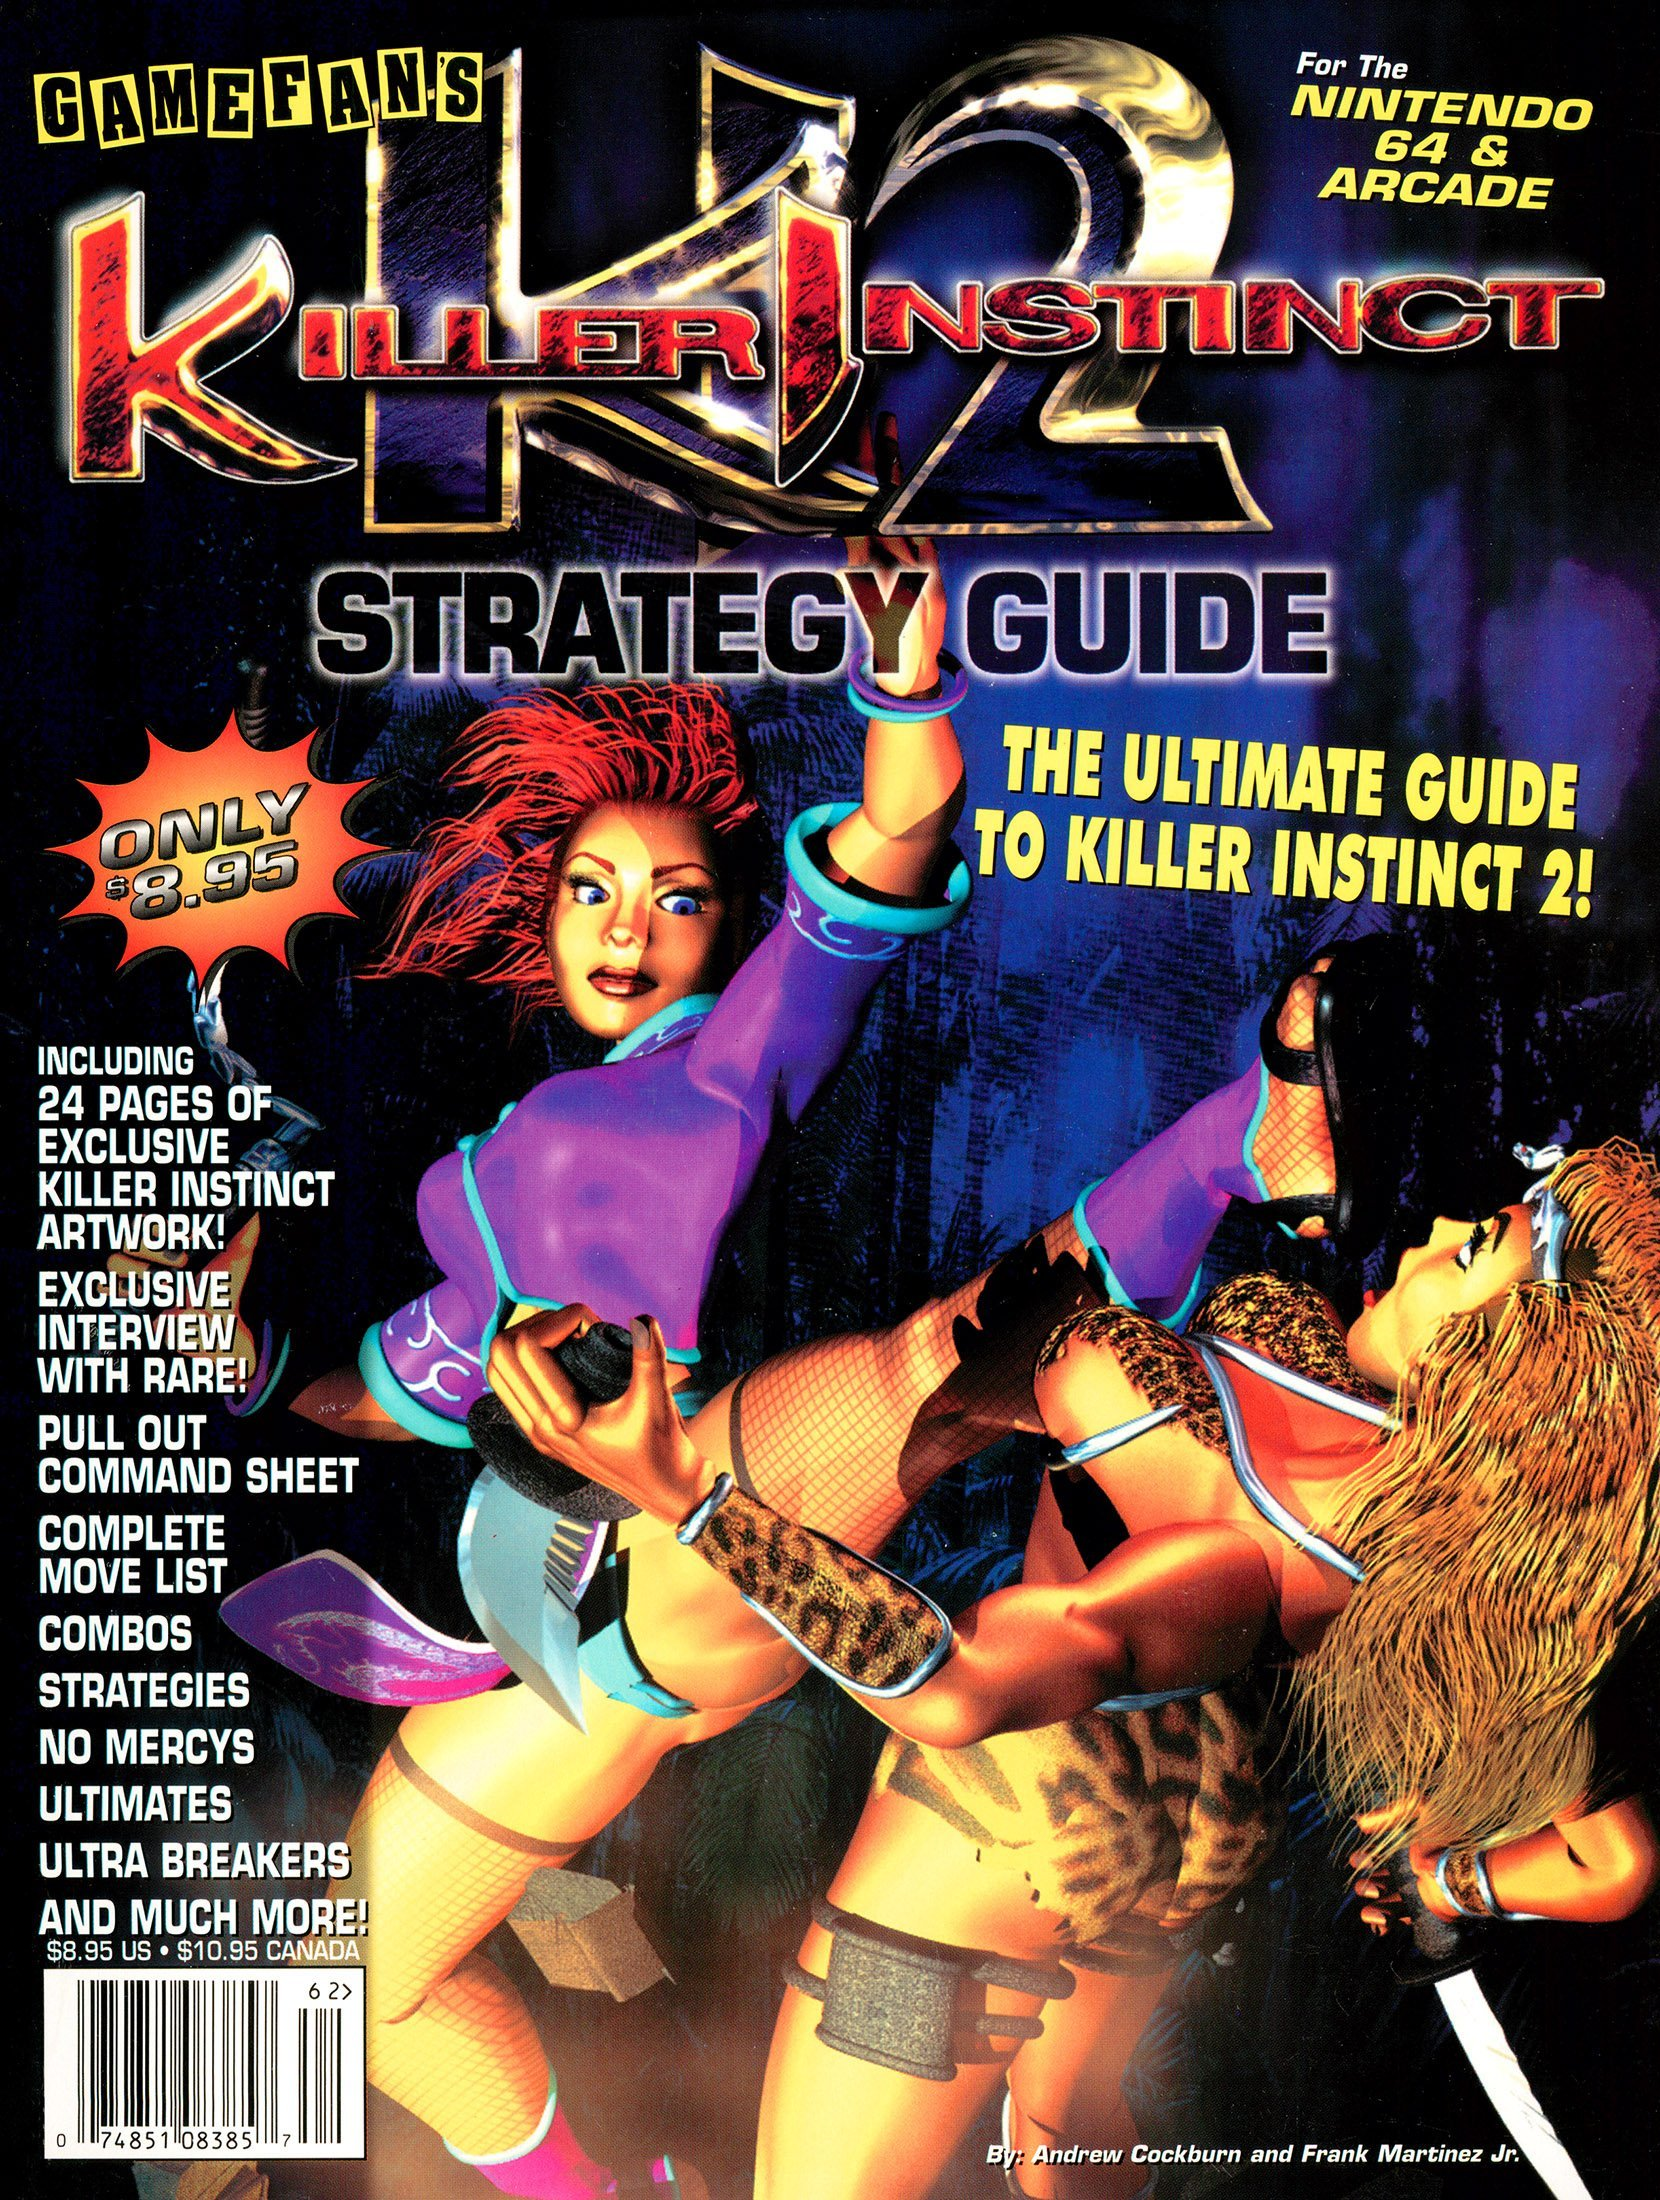 Killer Instinct 2 Strategy Guide